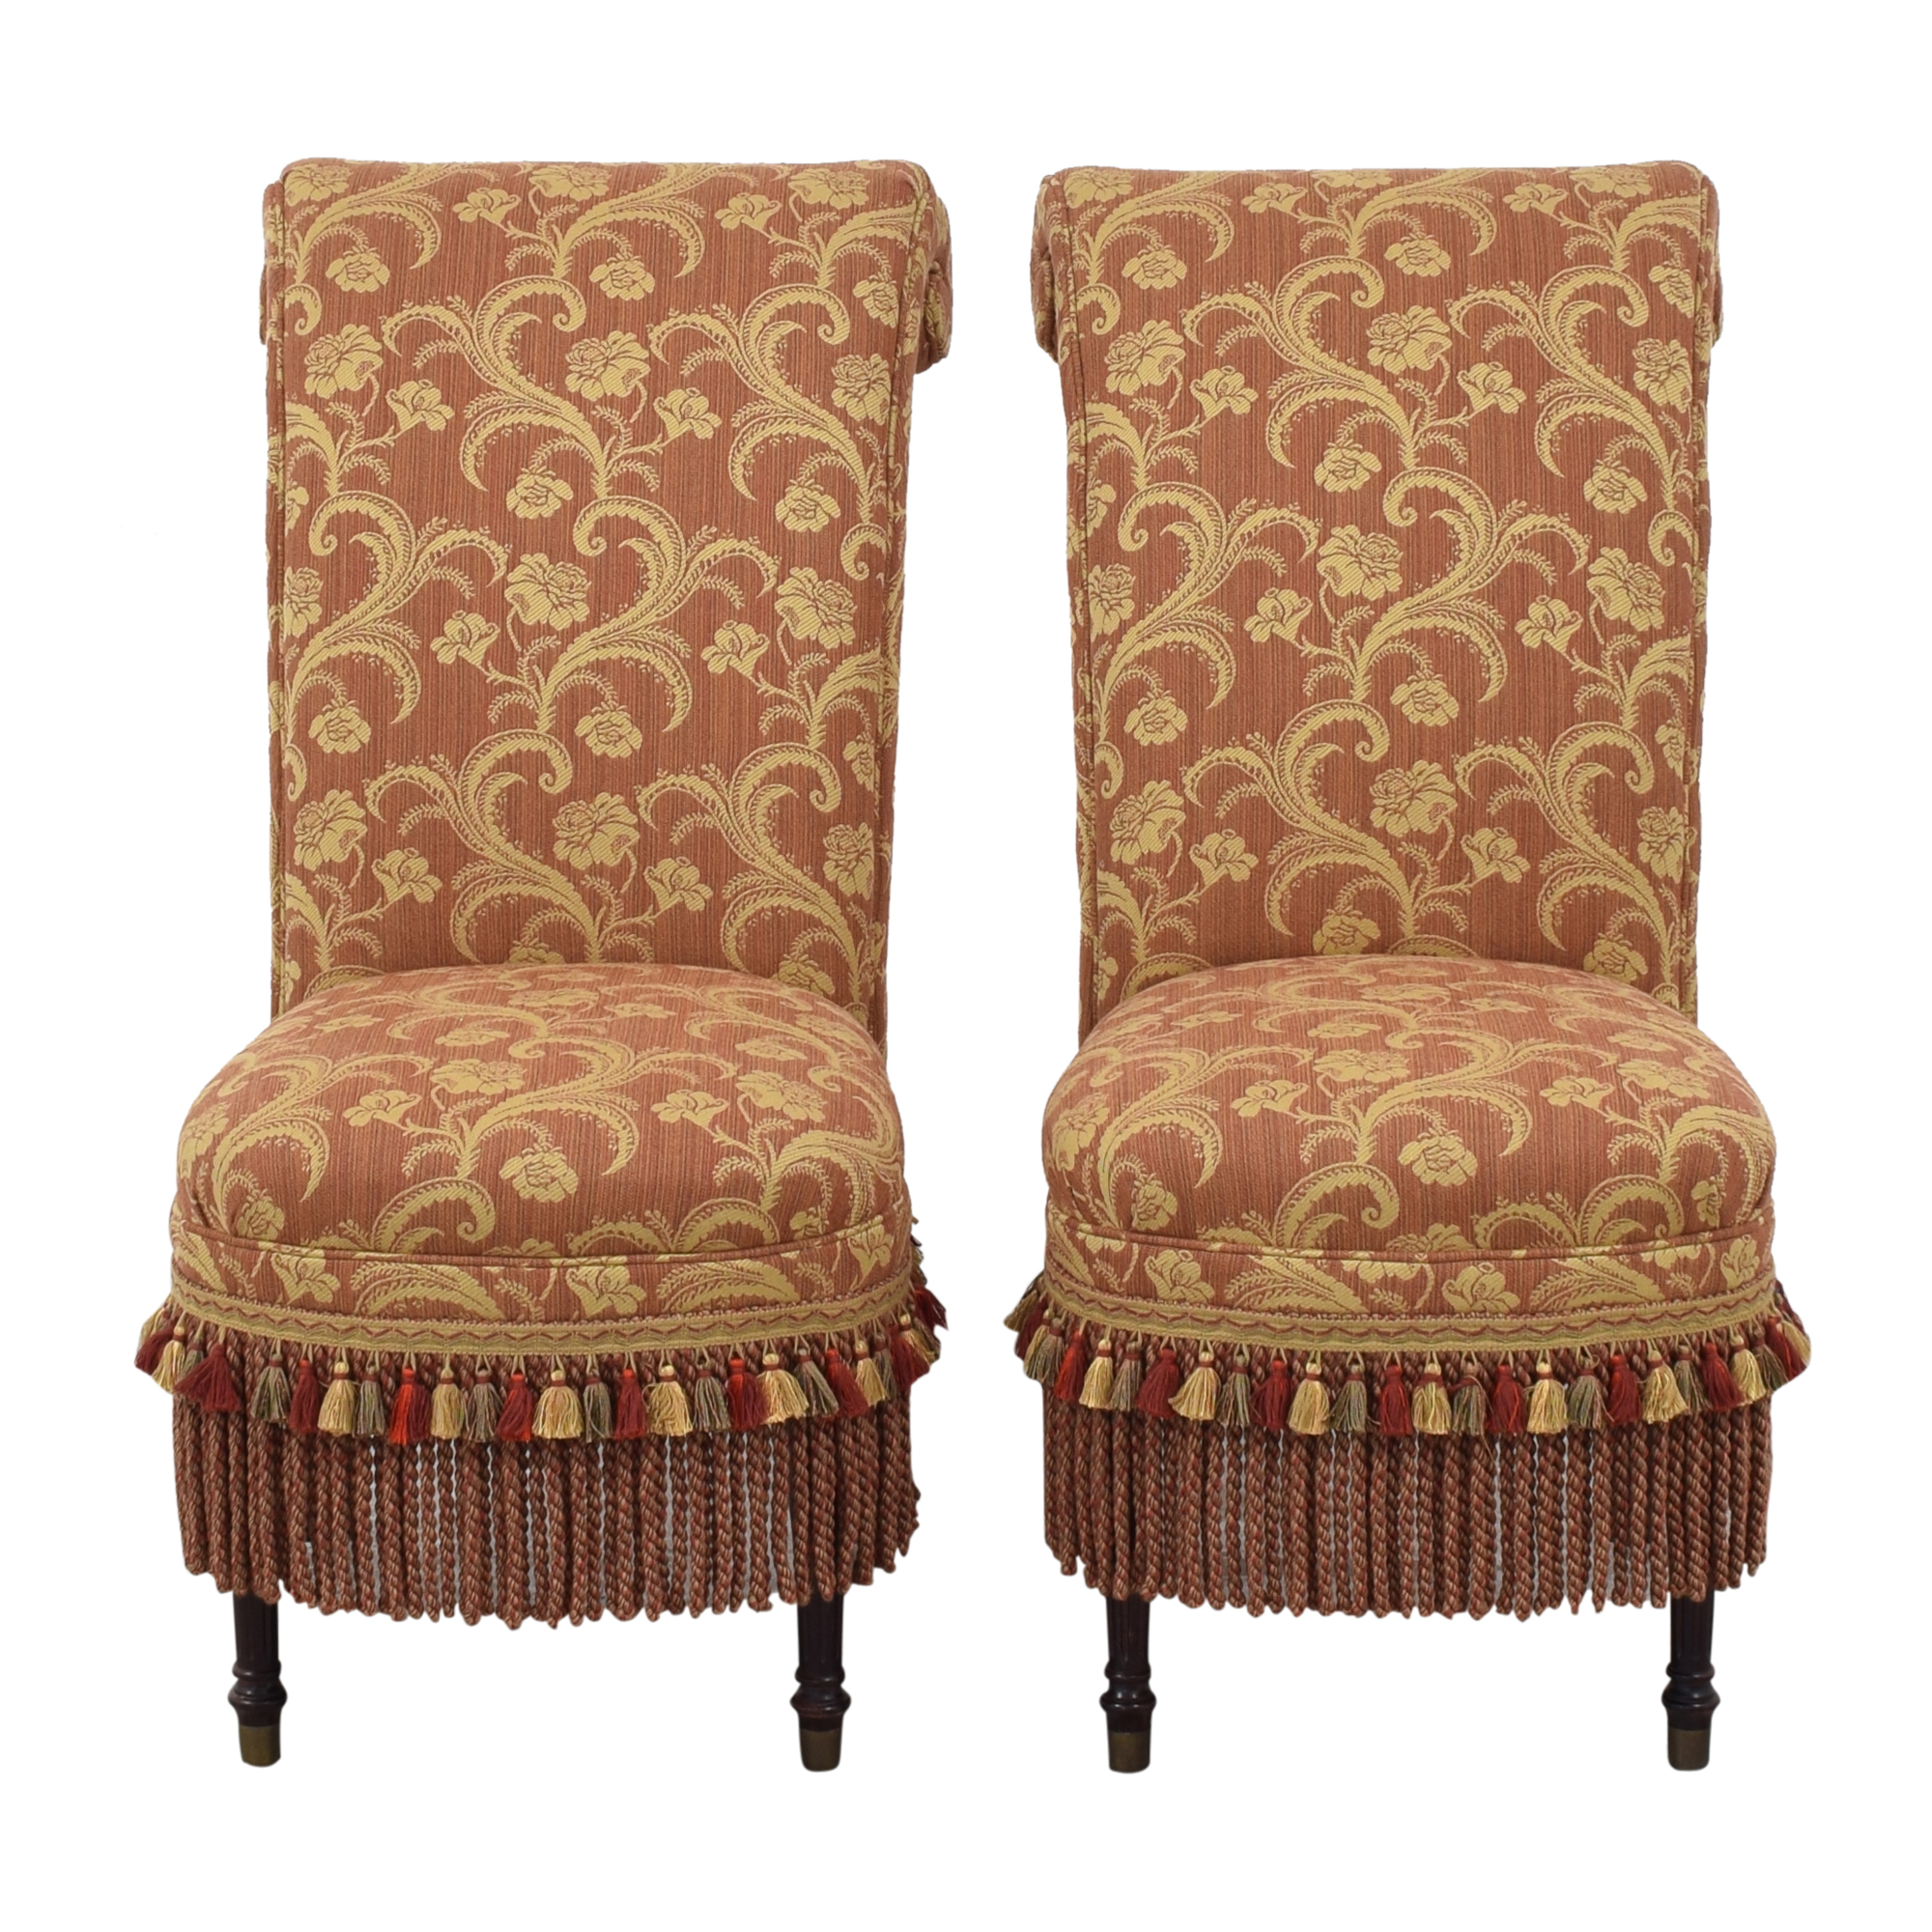 Designmaster Furniture Designmaster Furniture Scroll Top Accent Chairs on sale